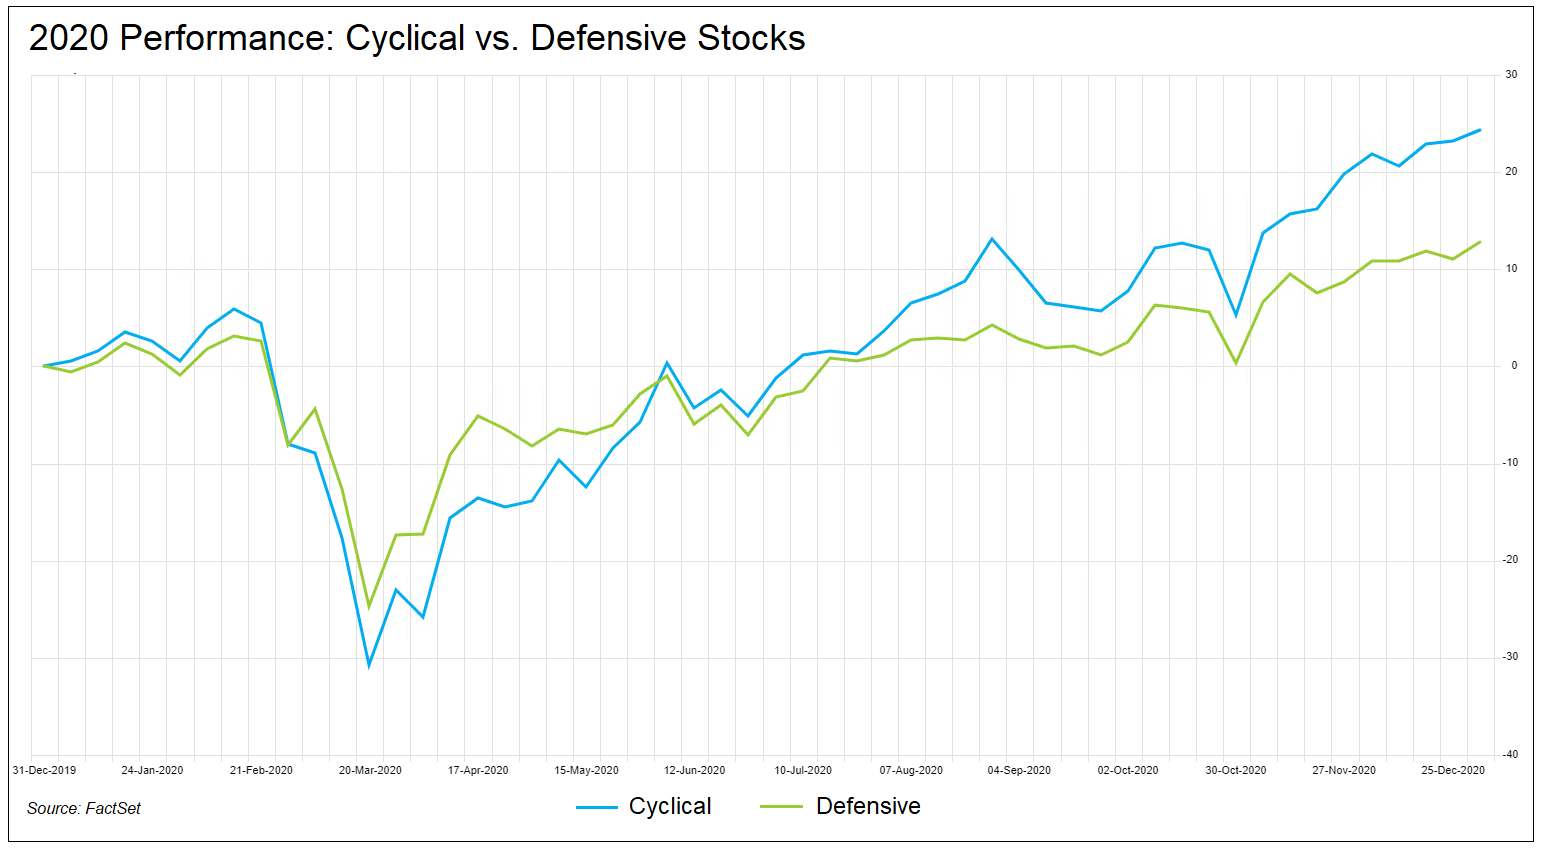 Cyclical vs. Defensive Stocks Performance